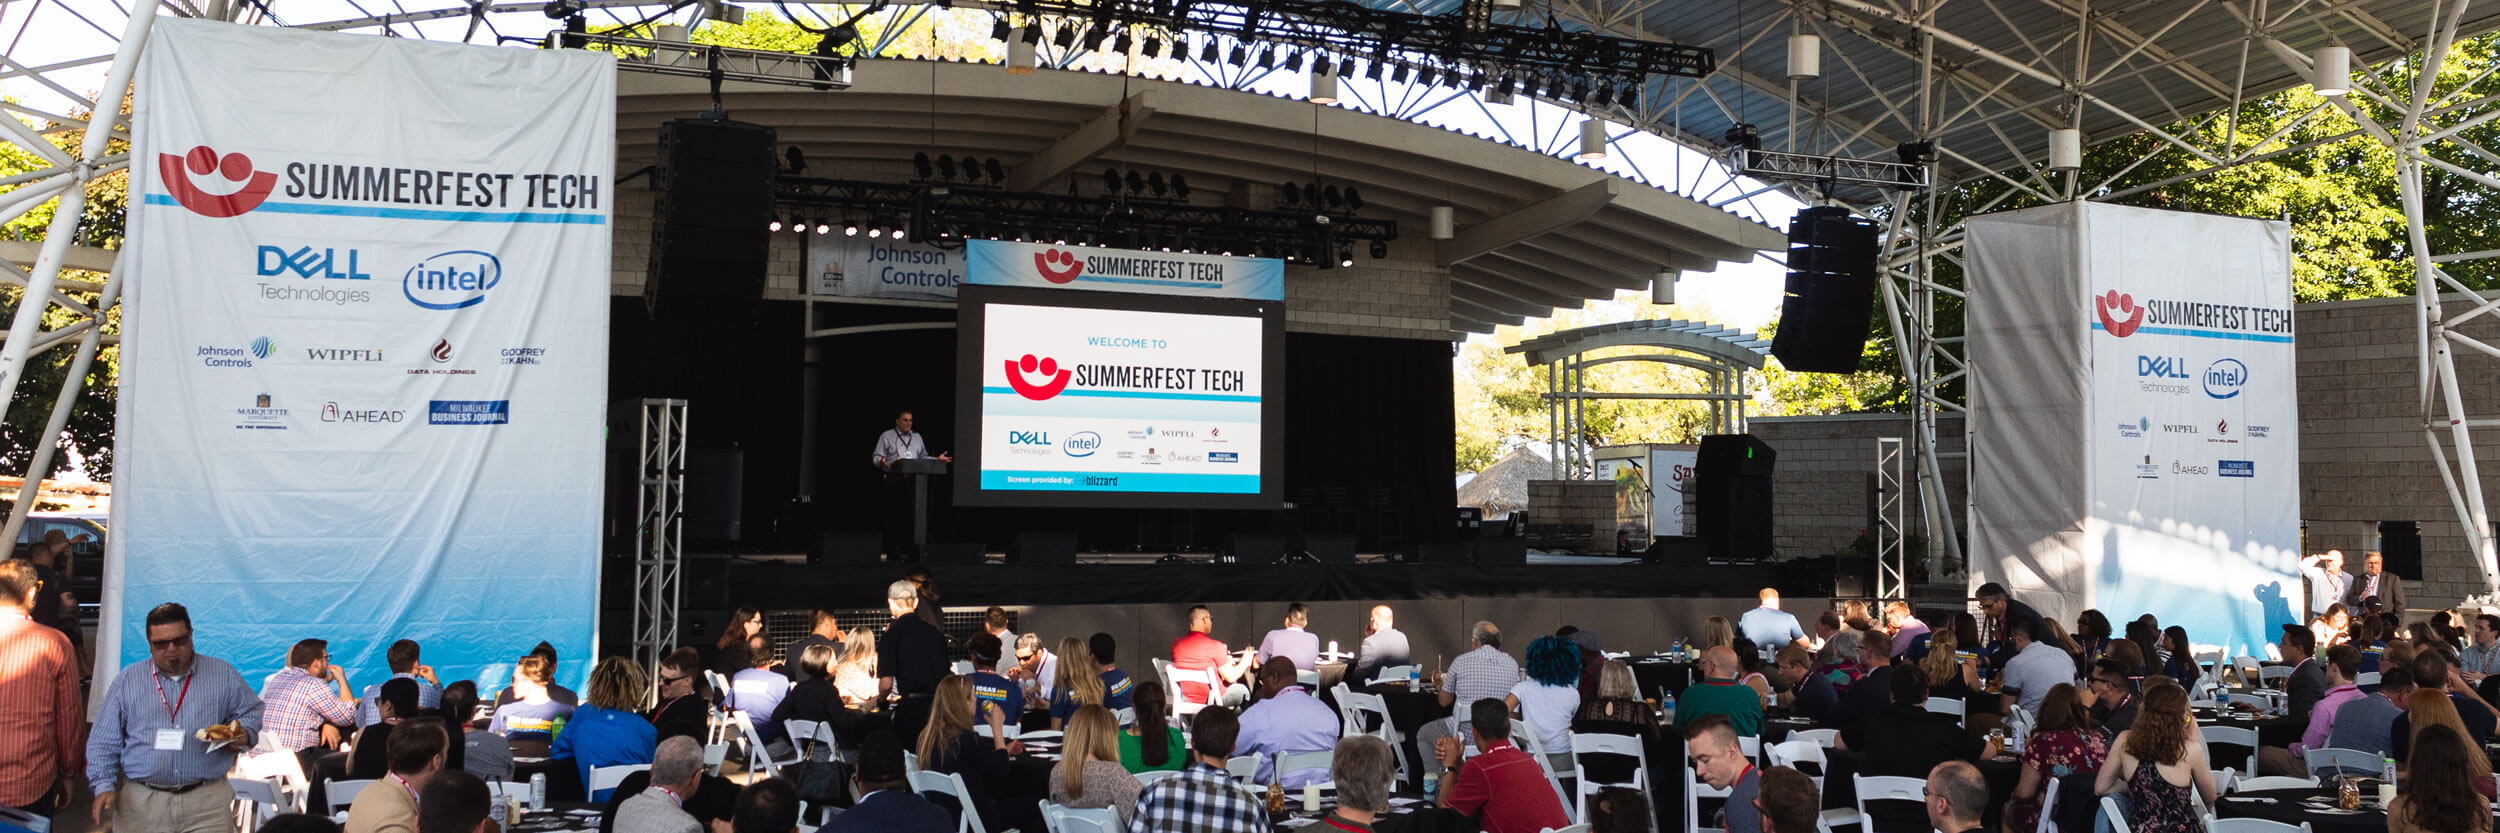 Technology and innovation festival planned again to precede Summerfest